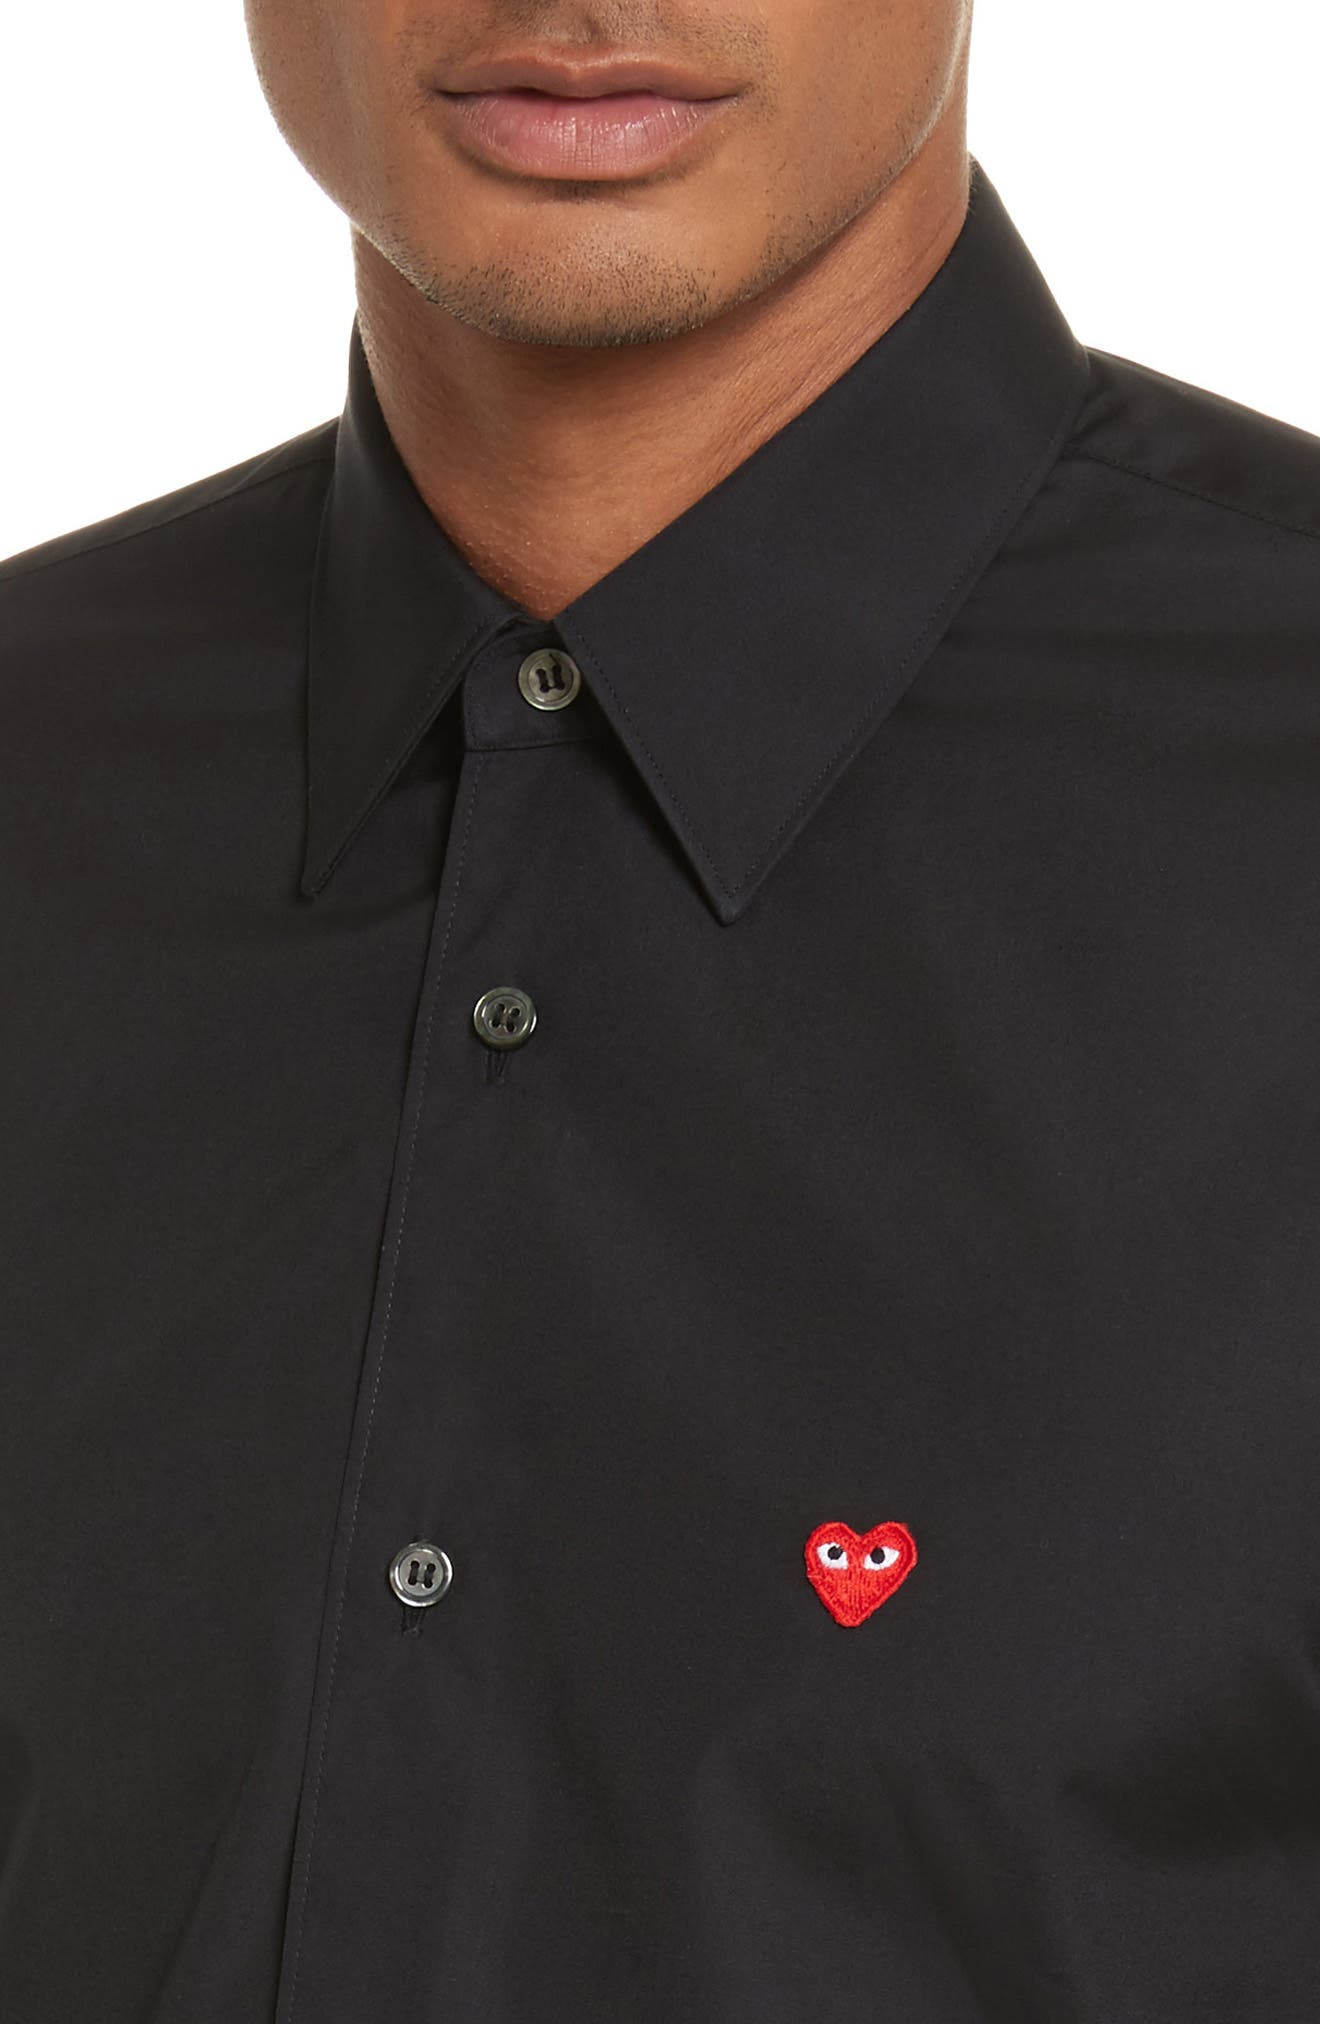 Trim Fit Oxford Shirt,                             Alternate thumbnail 5, color,                             BLACK